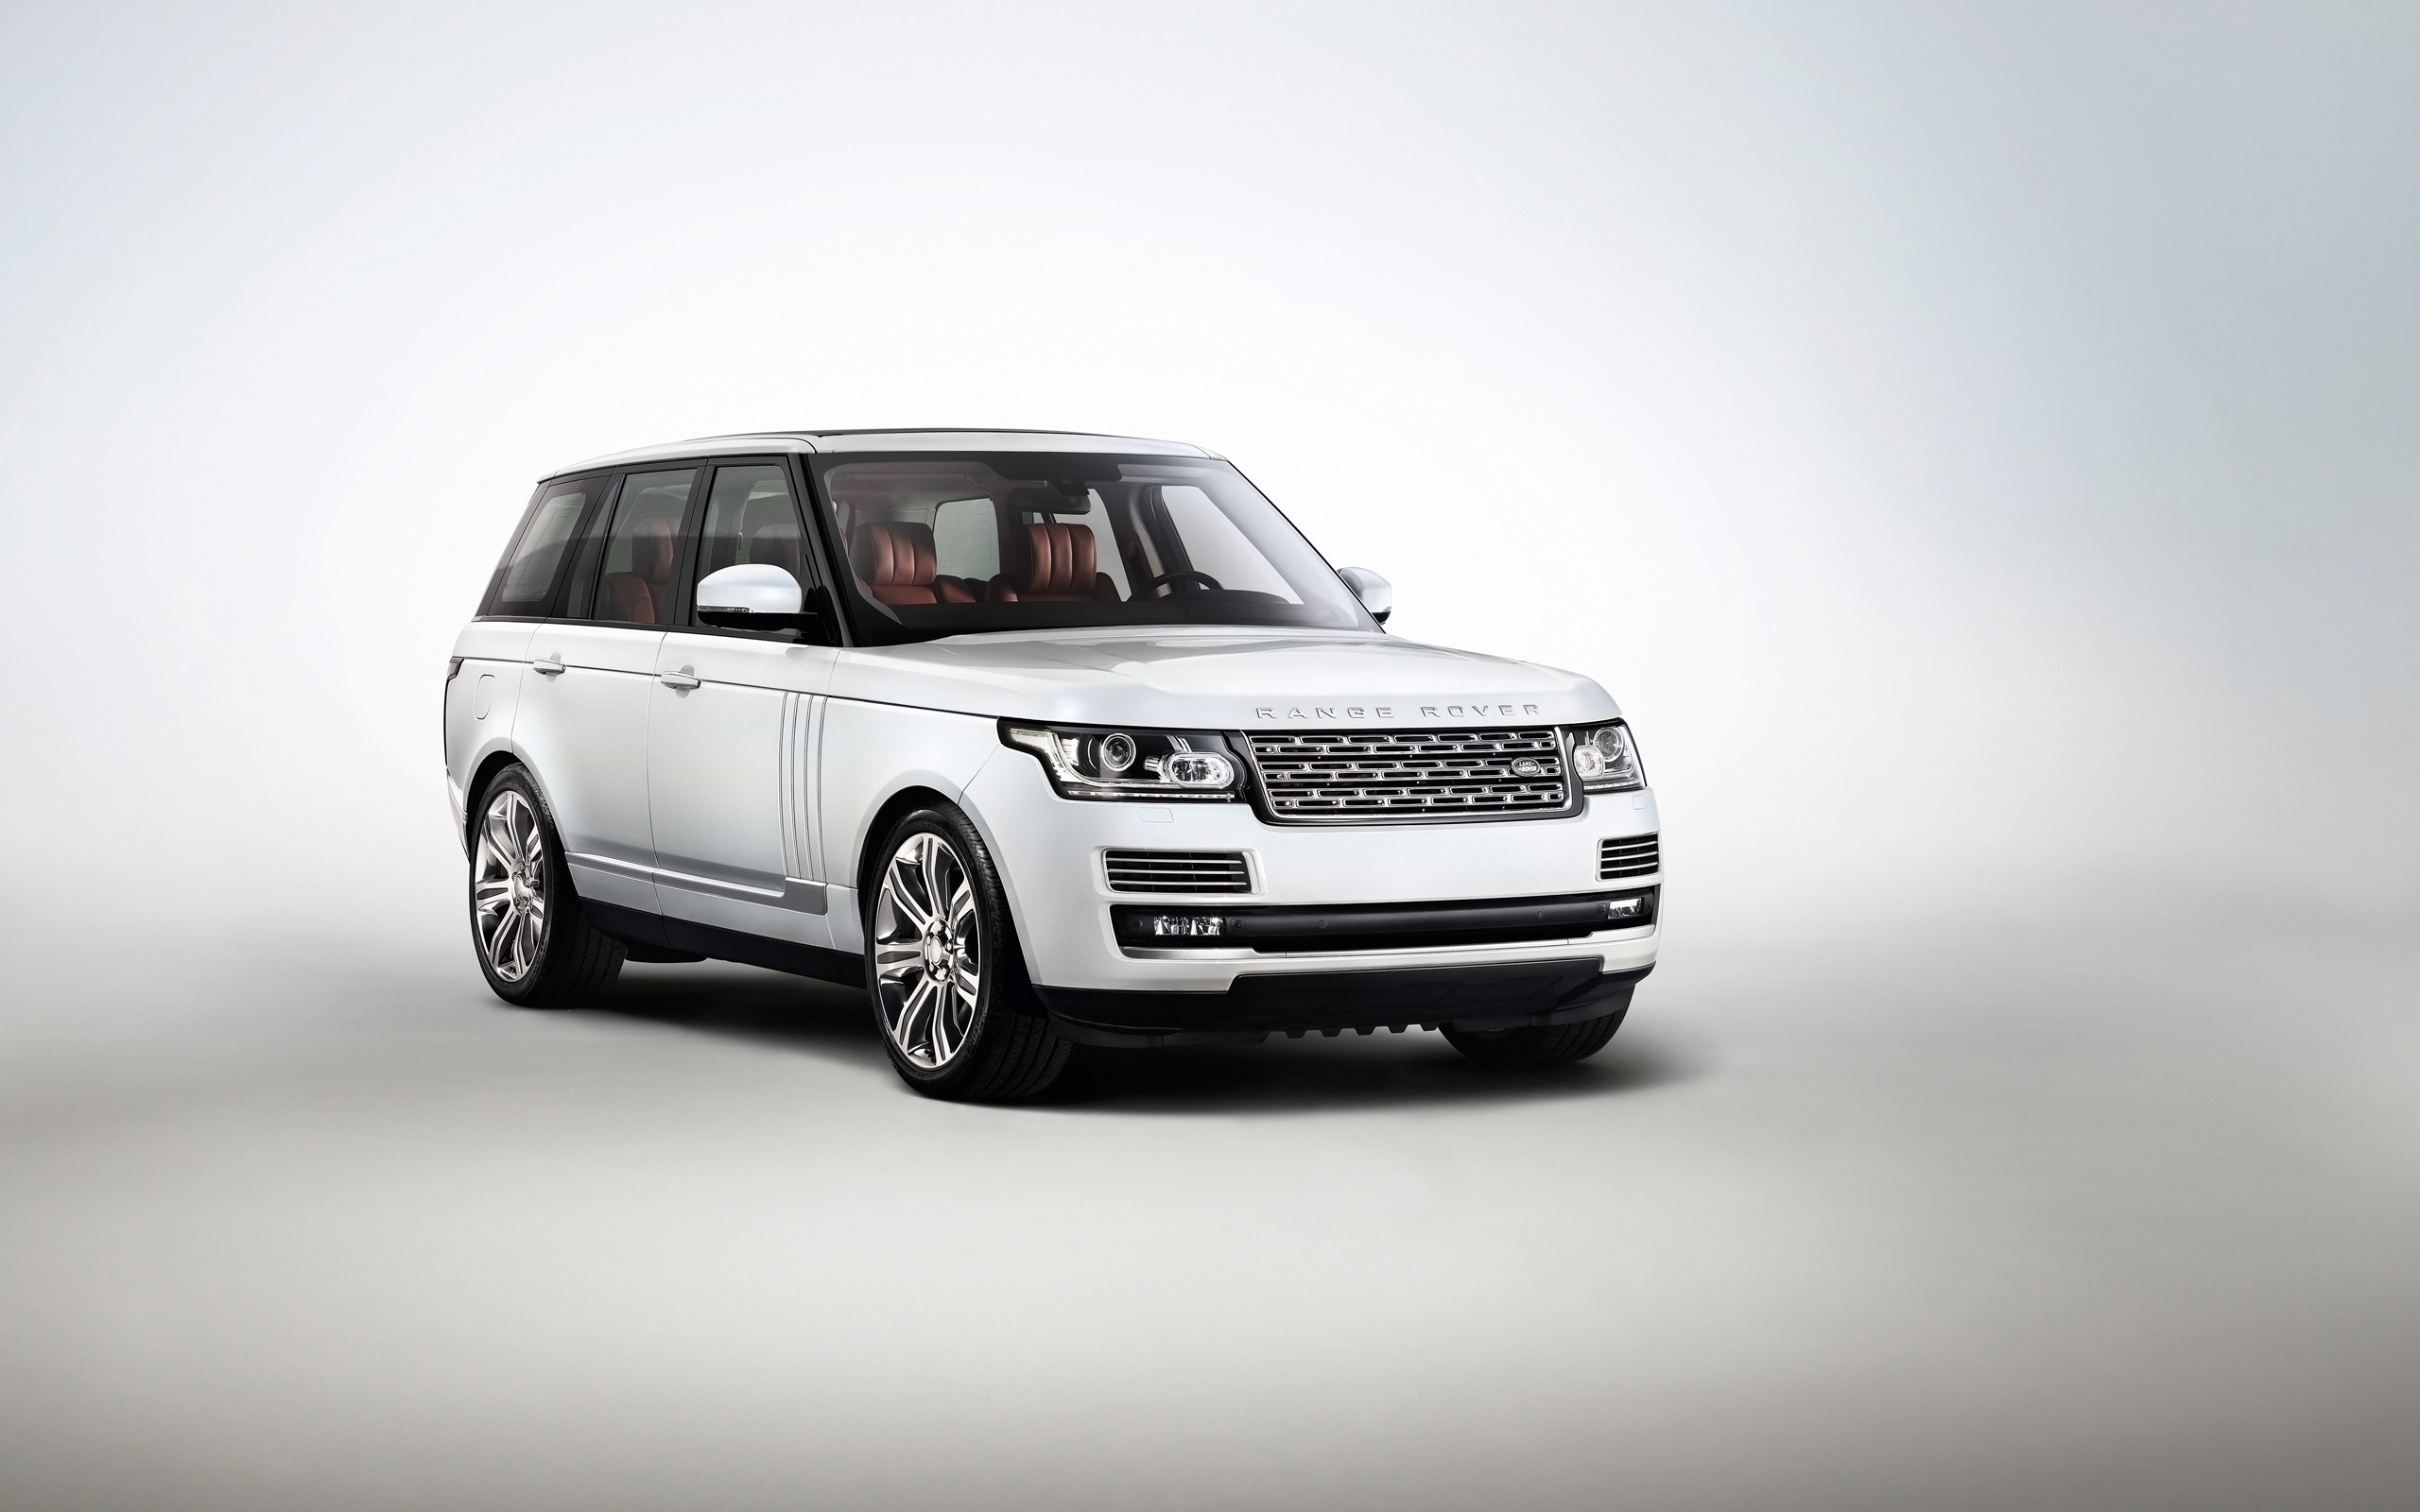 2014 land rover range rover autobiography wallpaper hd car wallpapers id 3875. Black Bedroom Furniture Sets. Home Design Ideas